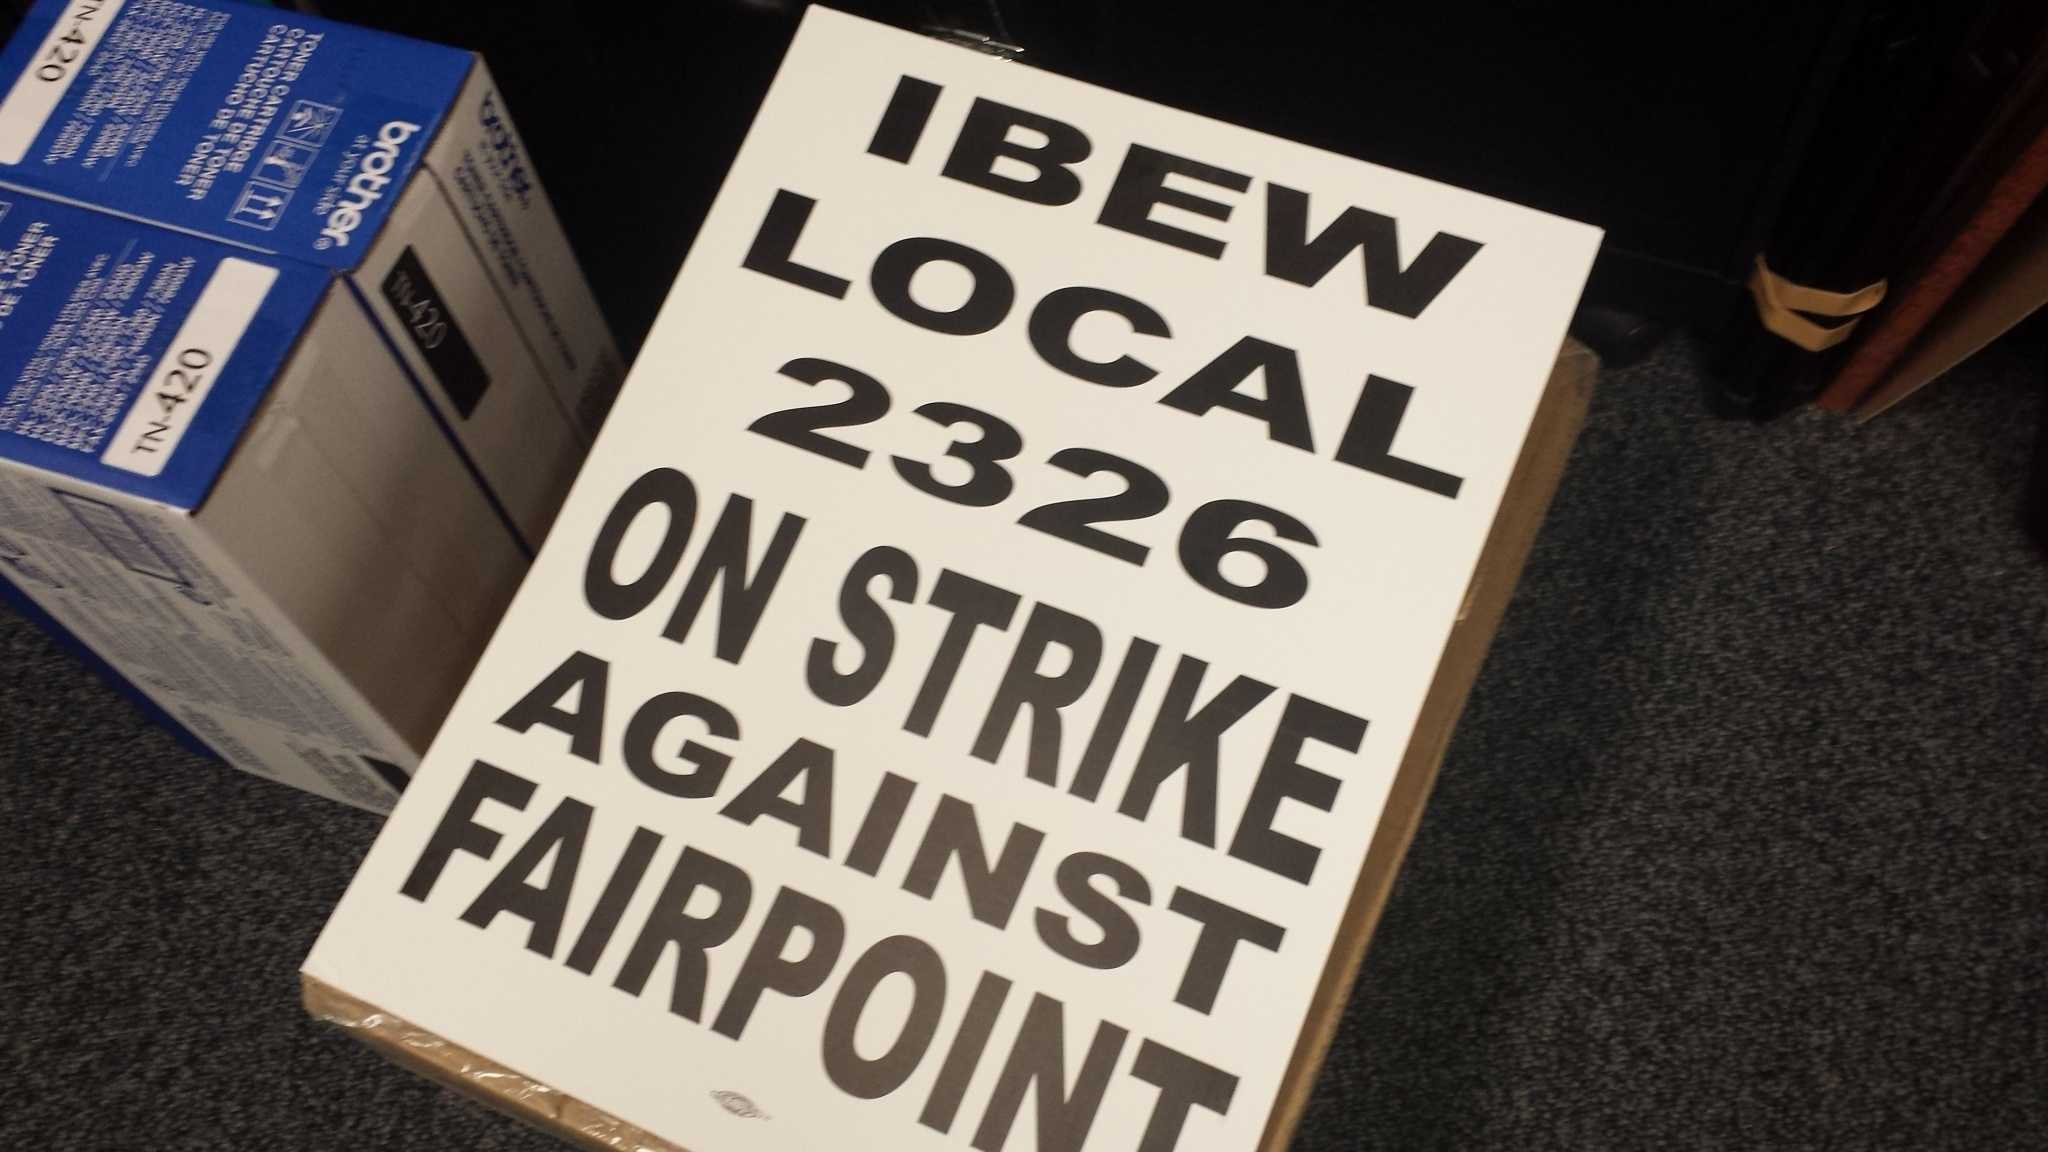 Placards are already printed for FairPoint union members to wear on picket lines should negotiations fail on a new contract.